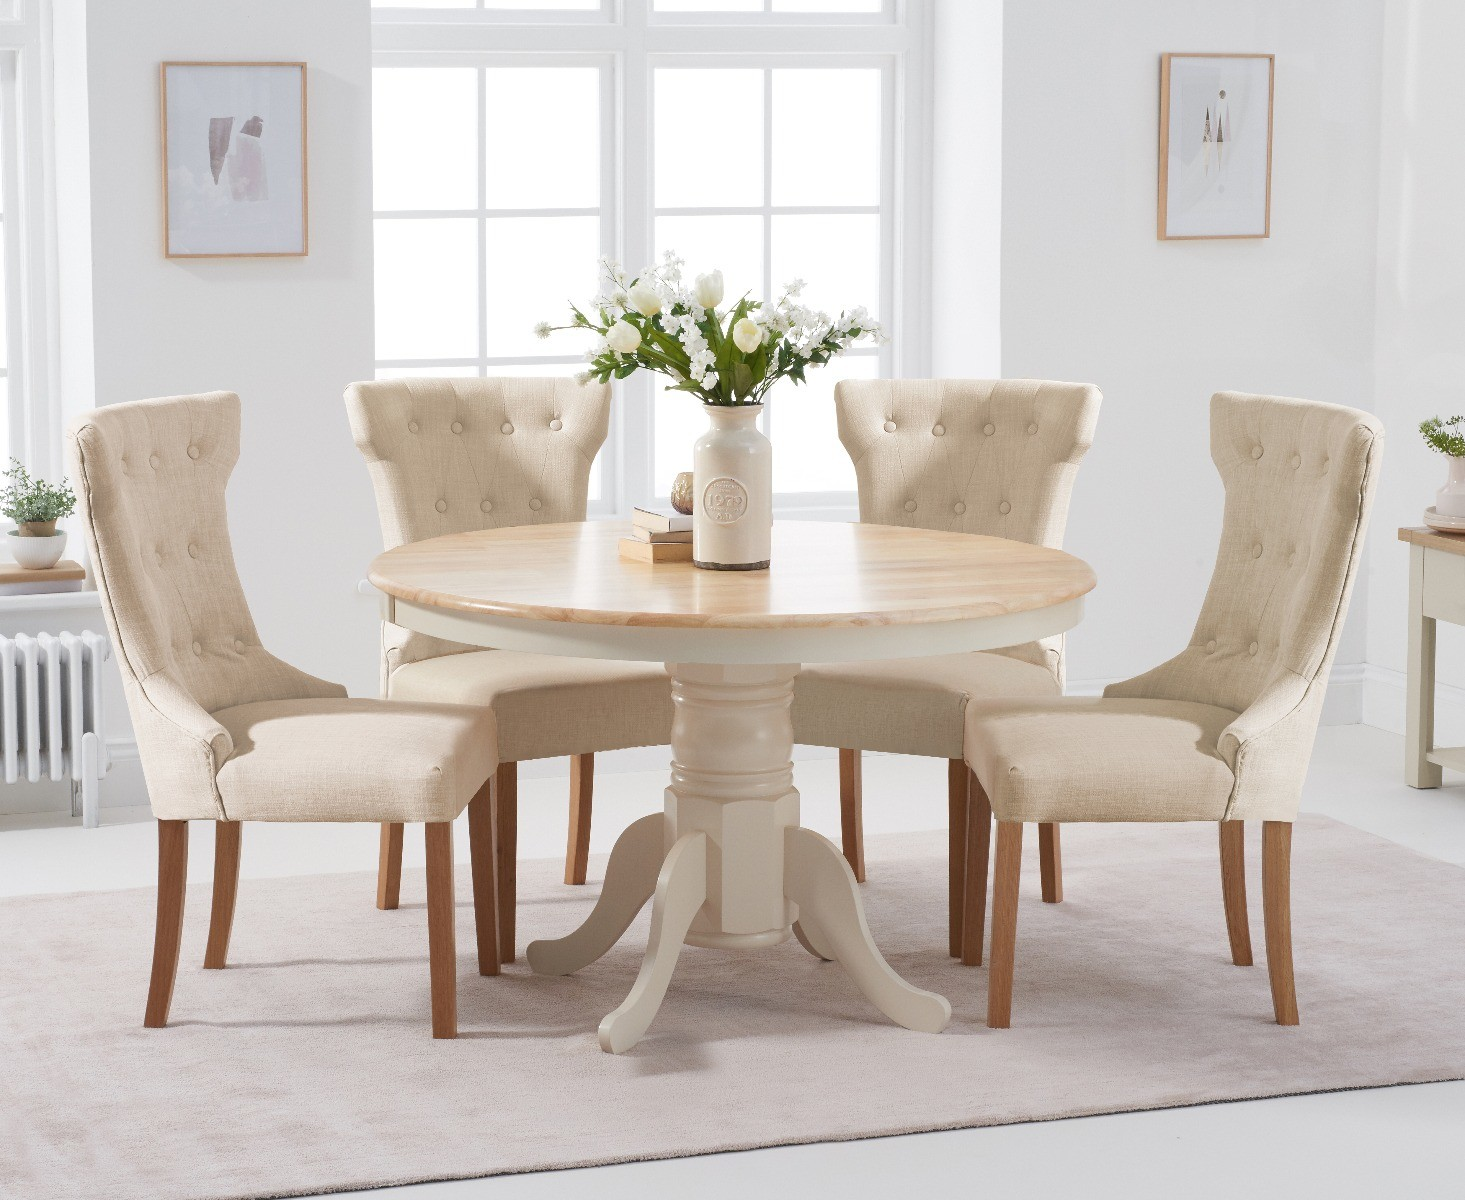 An image of Epsom 120cm Cream Round Pedestal Table with Camille Fabric Chairs - Cream, 4 Cha...